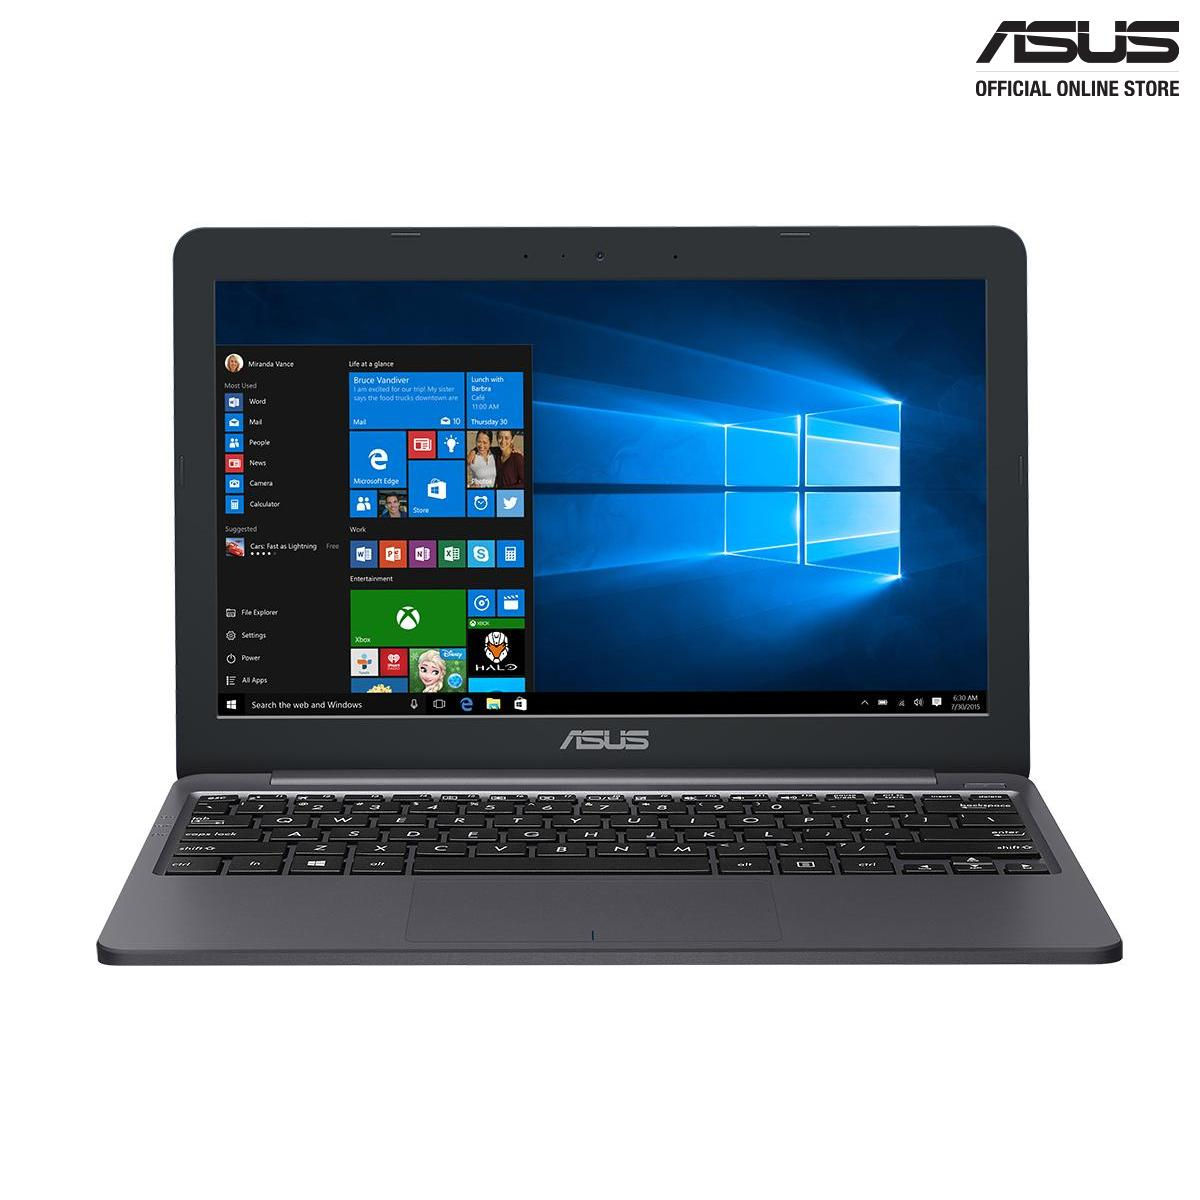 ASUS VivoBook E203MA / lightweight 11.6-inch laptop /1 Years International warranty